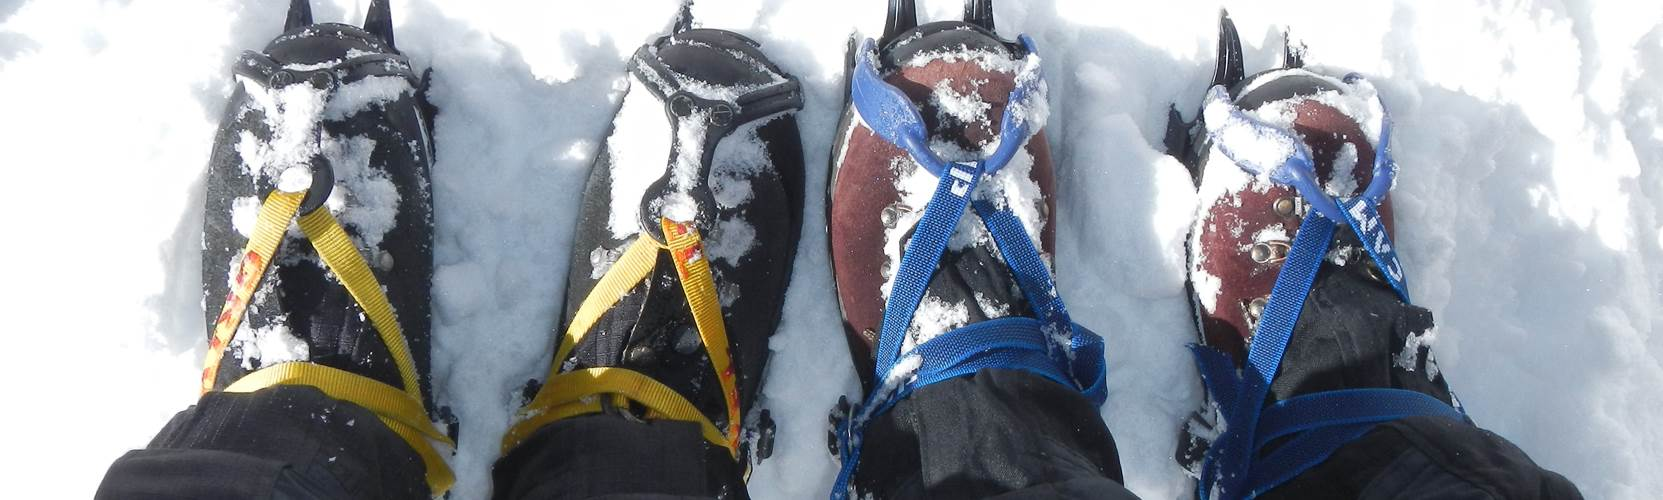 mountain boots and crampons